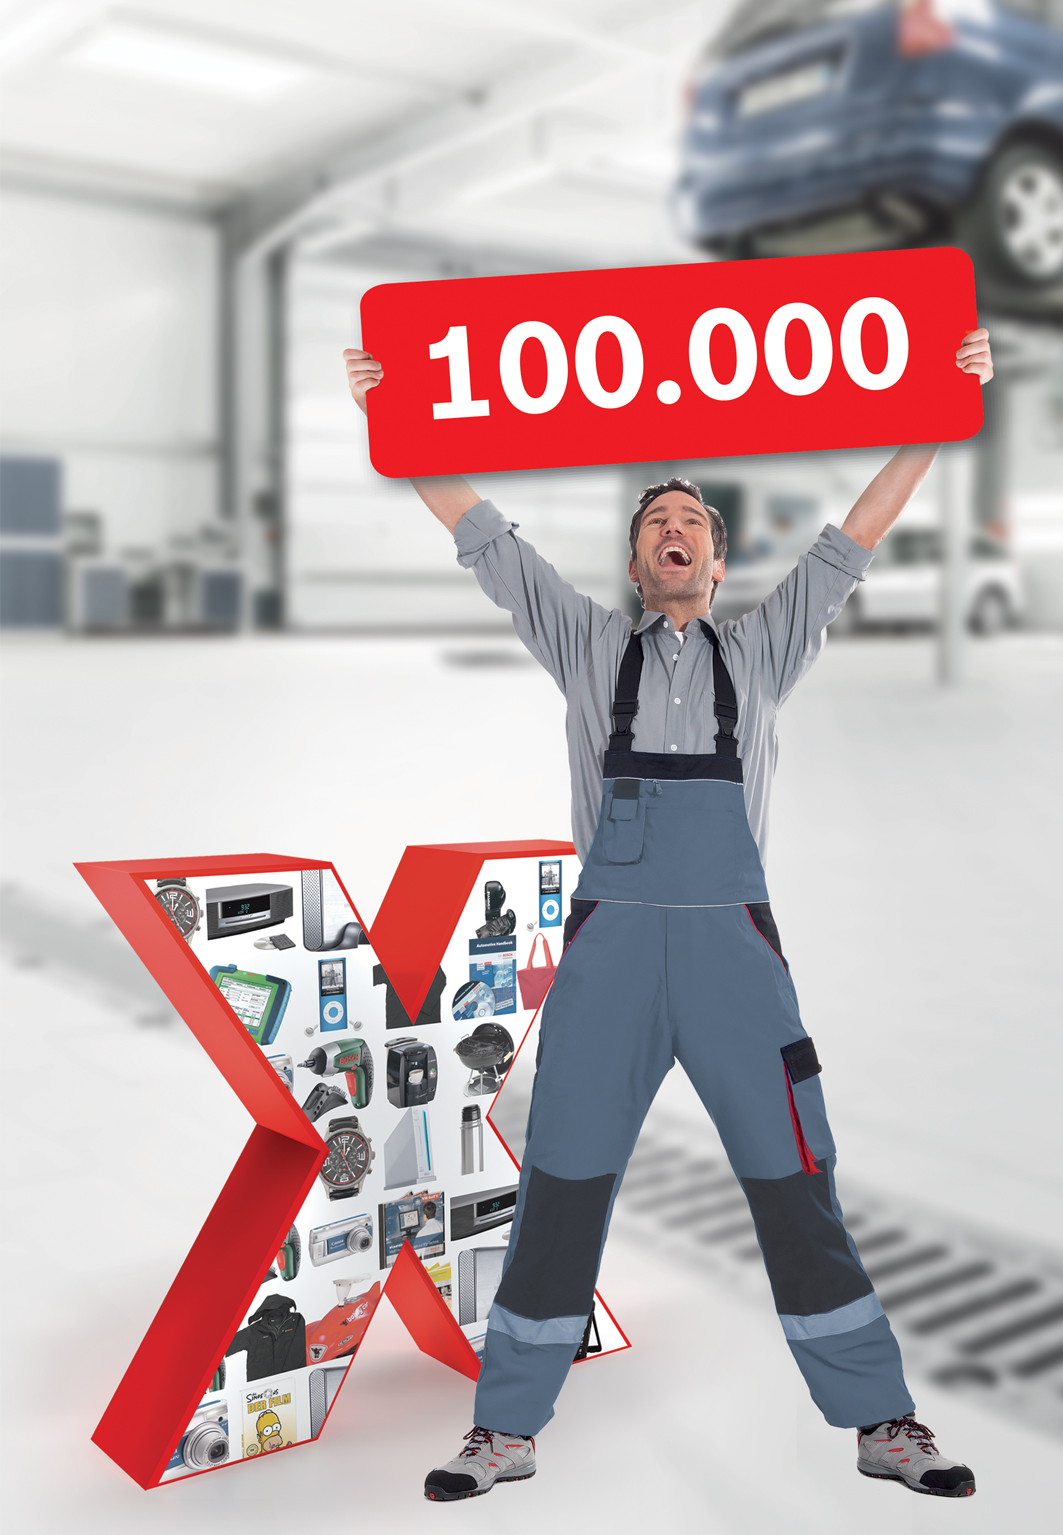 """extra"" ist the largest loyalty program in the workshop area: Over 100 000 workshops worldwide are registered in the ""extra"" loyalty program"